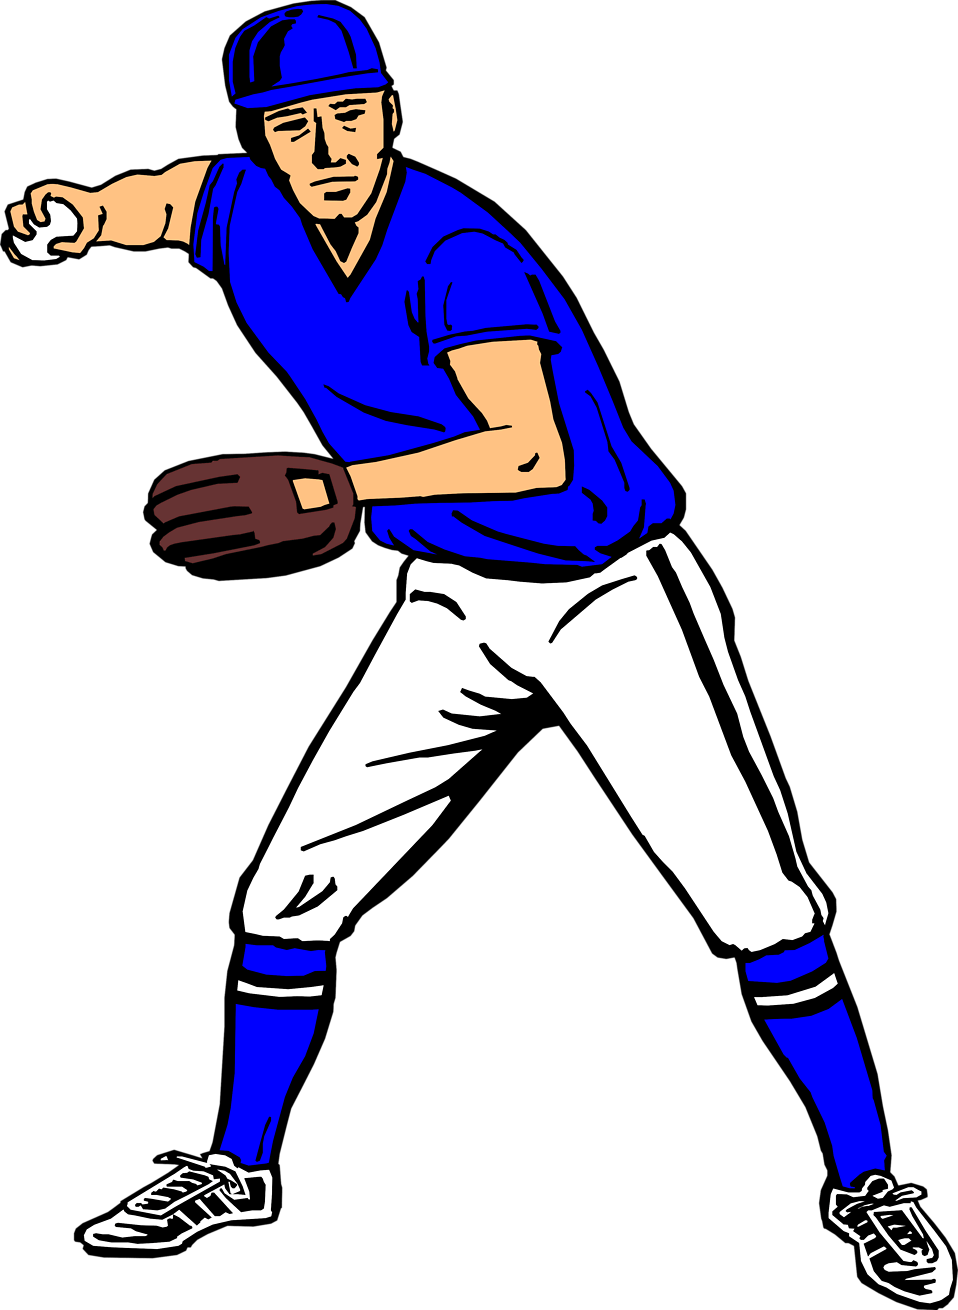 Kids baseball player clipart free Baseball Catcher Cliparts - Cliparts Zone free